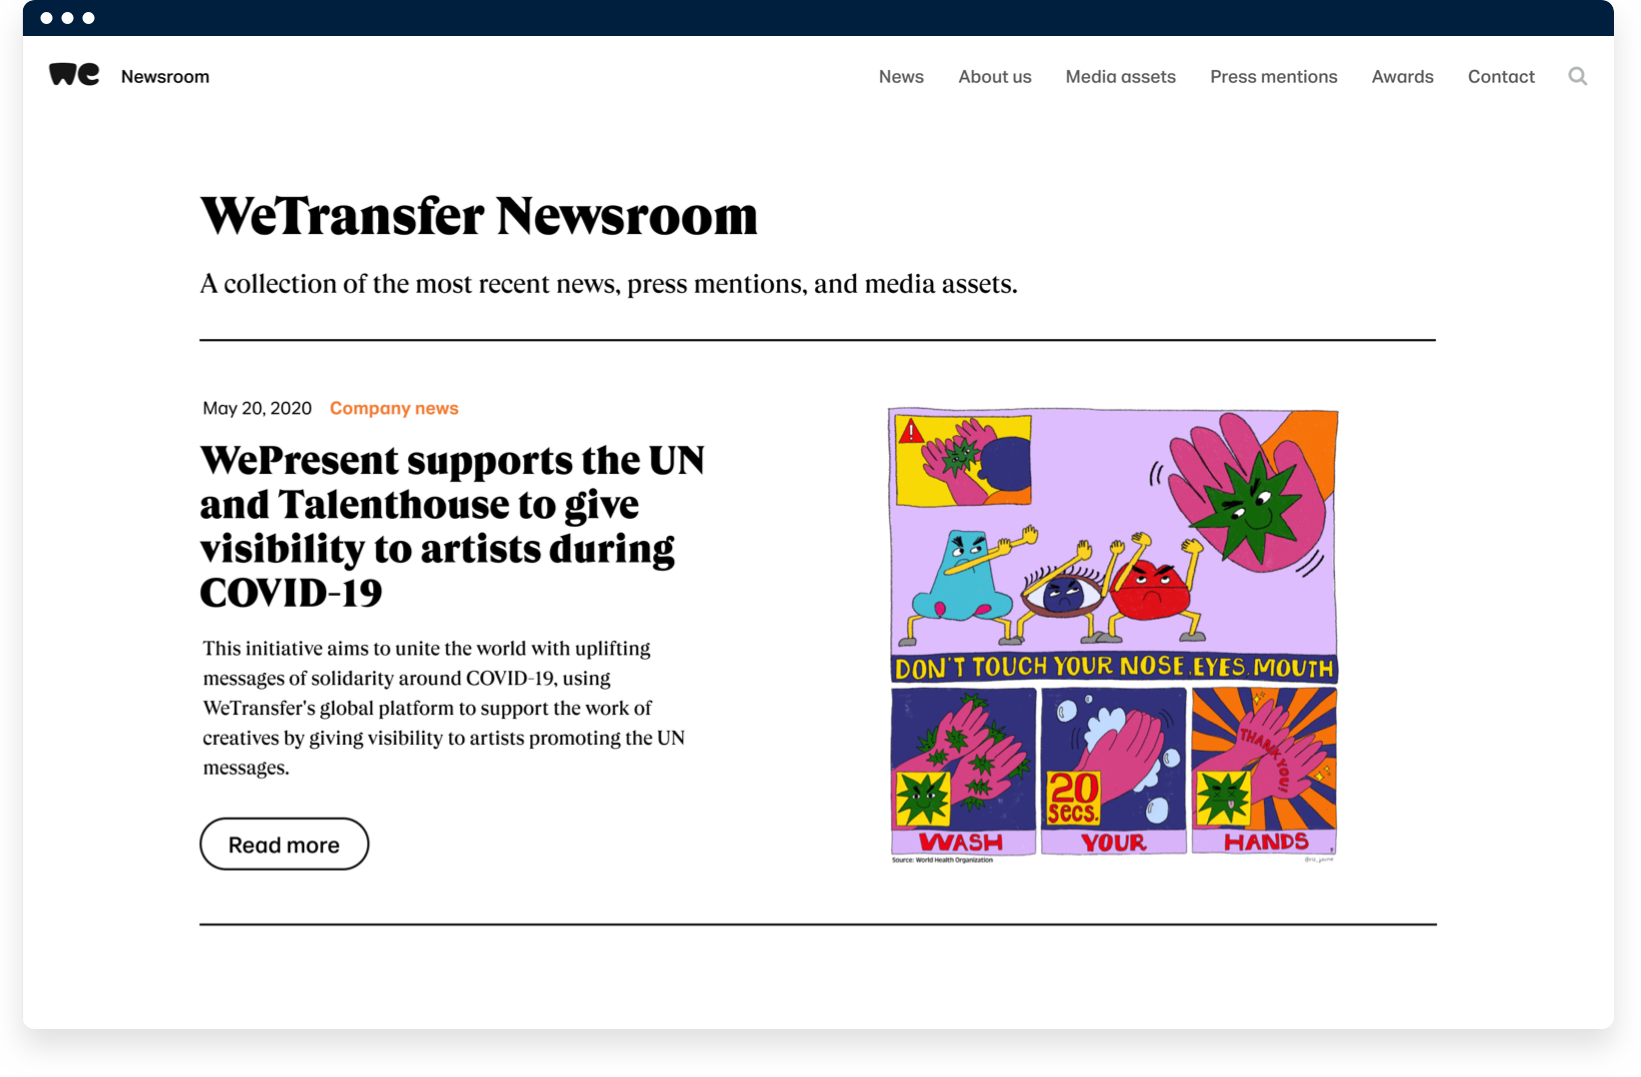 newsroom-wetransfer-galerij